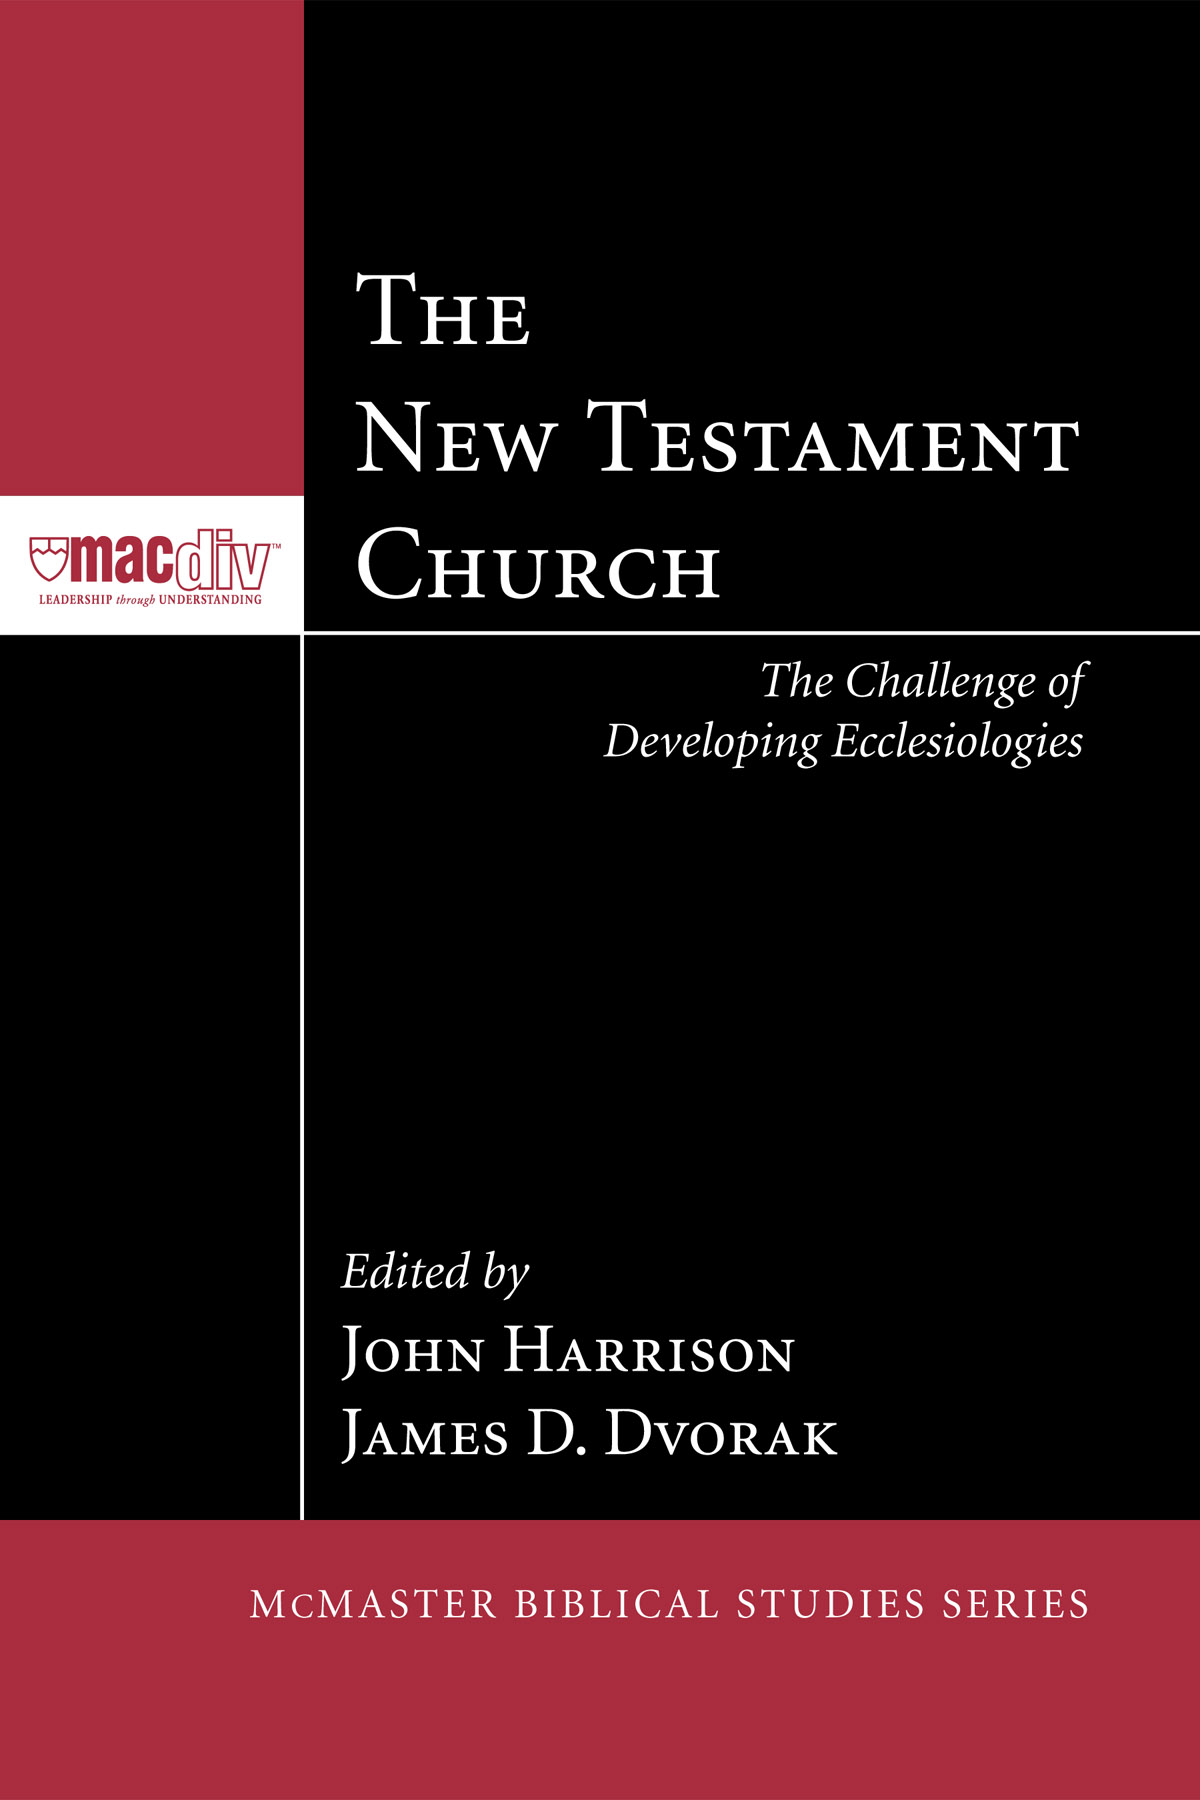 The New Testament Church: The Challenge of Developing Ecclesiologies